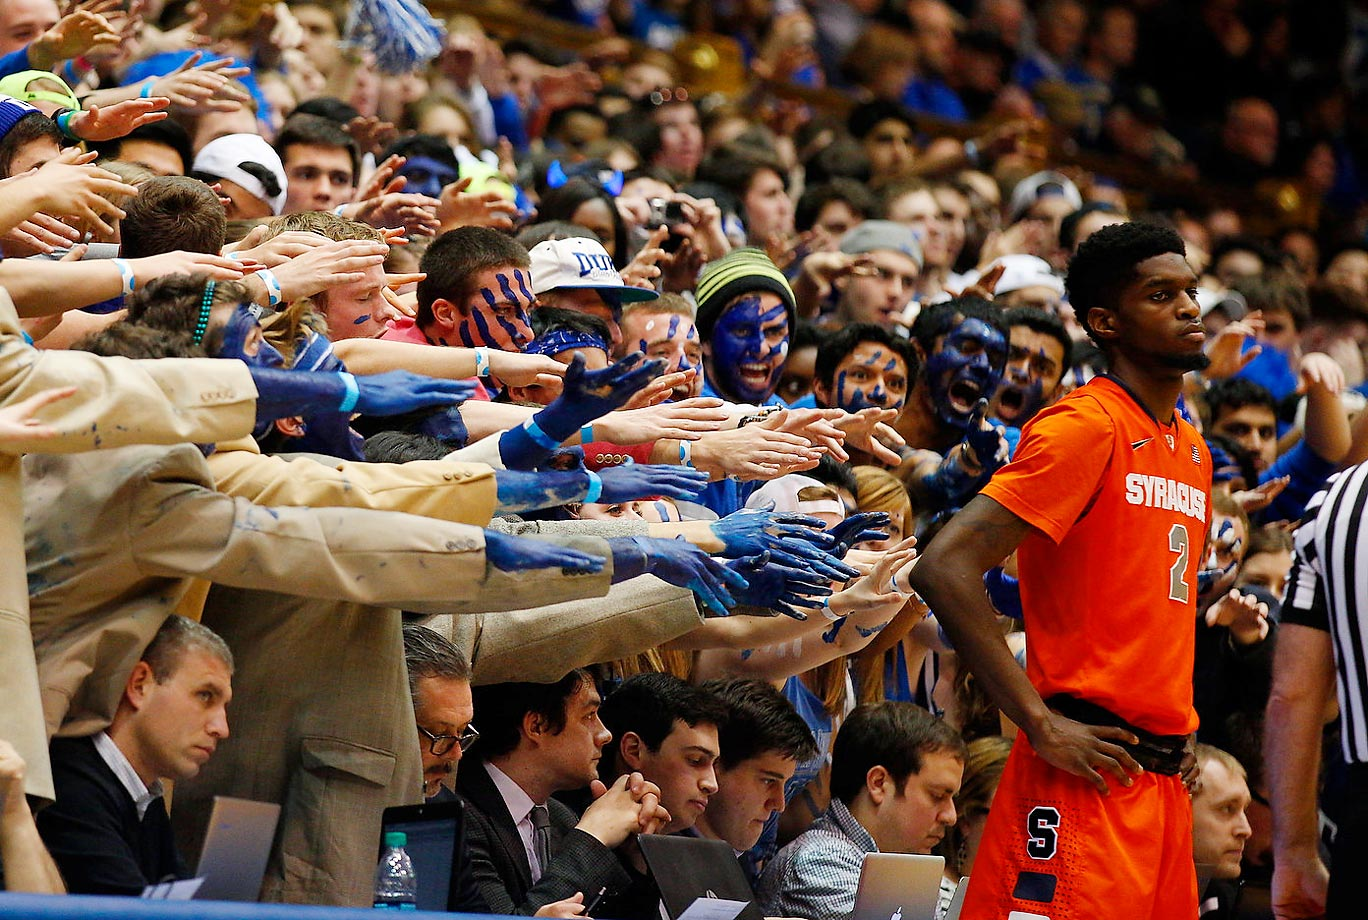 Syracuse Orange forward B.J. Johnson (2) waits to inbound the ball to start the second half against Duke as the Cameron Crazies waves their hands at him.